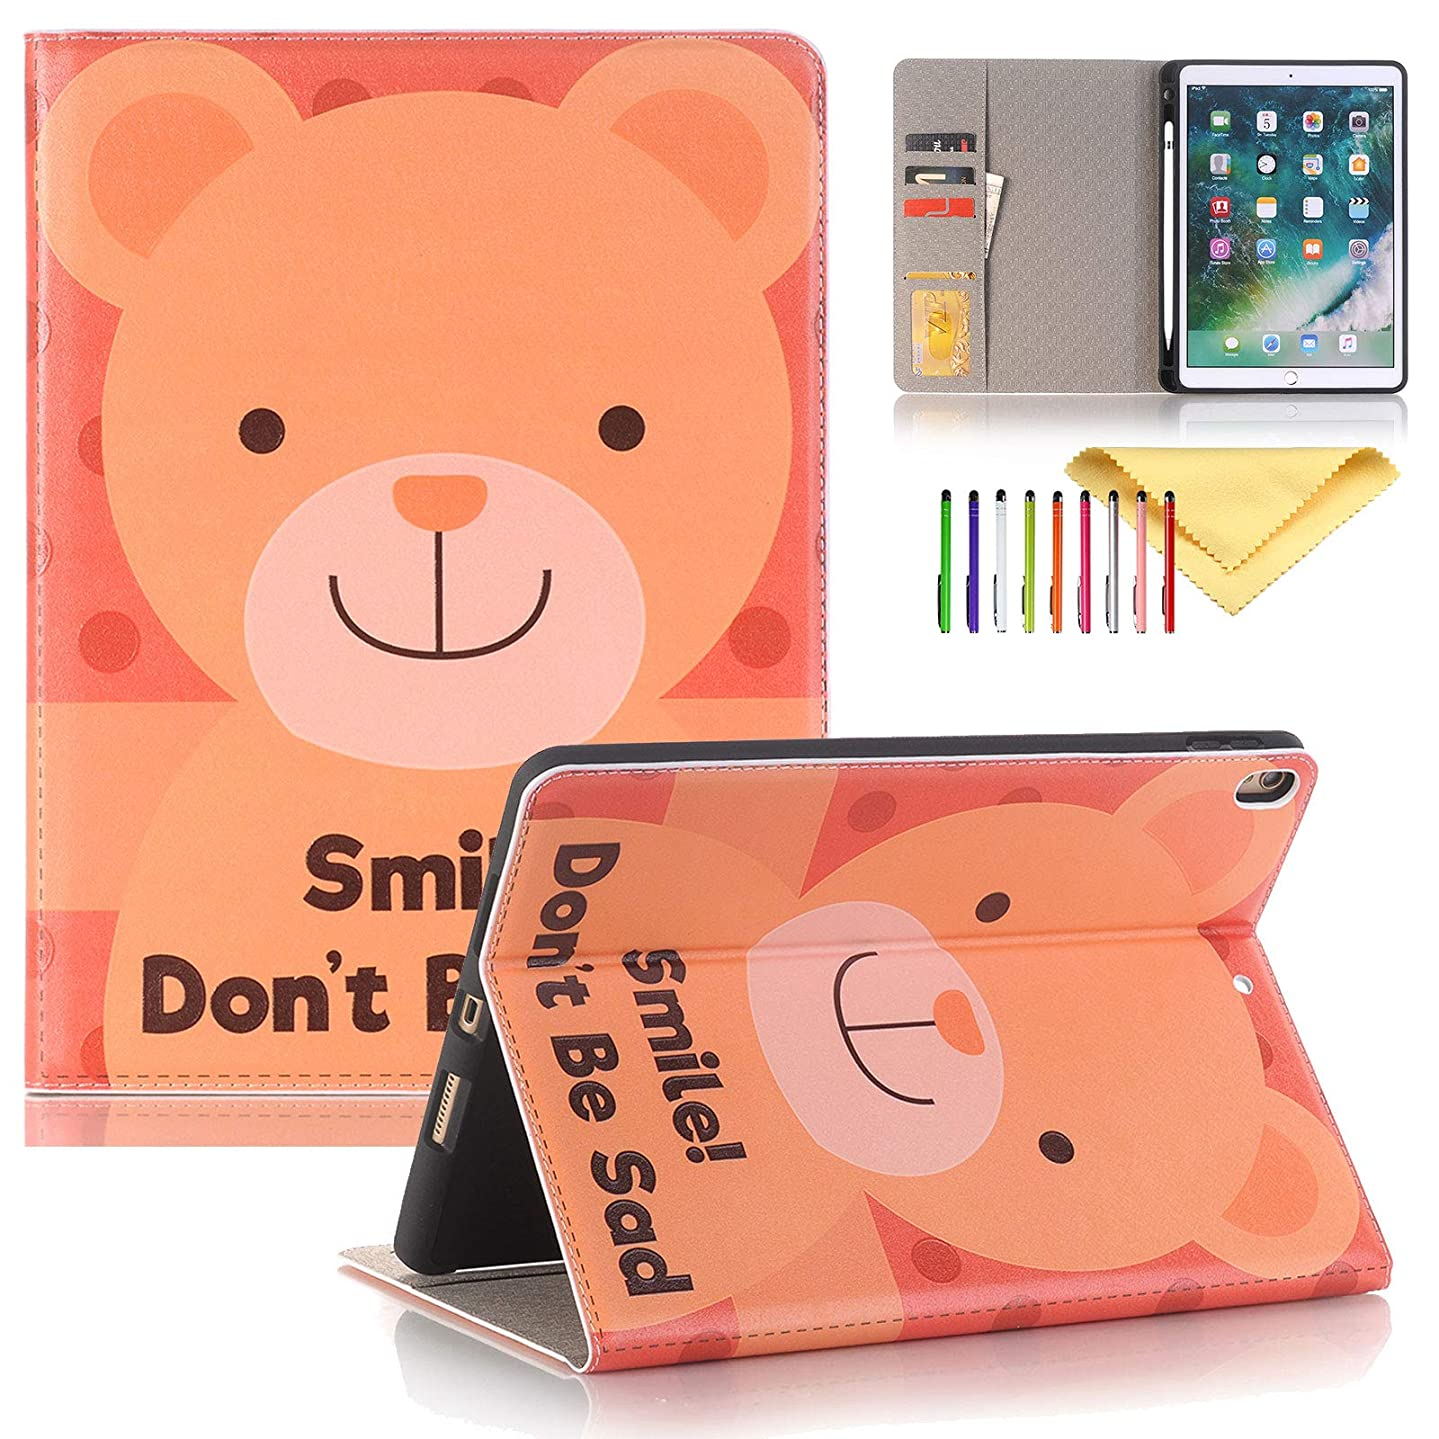 iPad Air 3 Case 2019 with Pencil Holder, iPad Pro 10.5 Inch Case 2017, Cookk Cartoon PU Leather Cases and Covers with Auto Sleep/Wake & Card Slots Smart Cover Kids for Apple 10.5